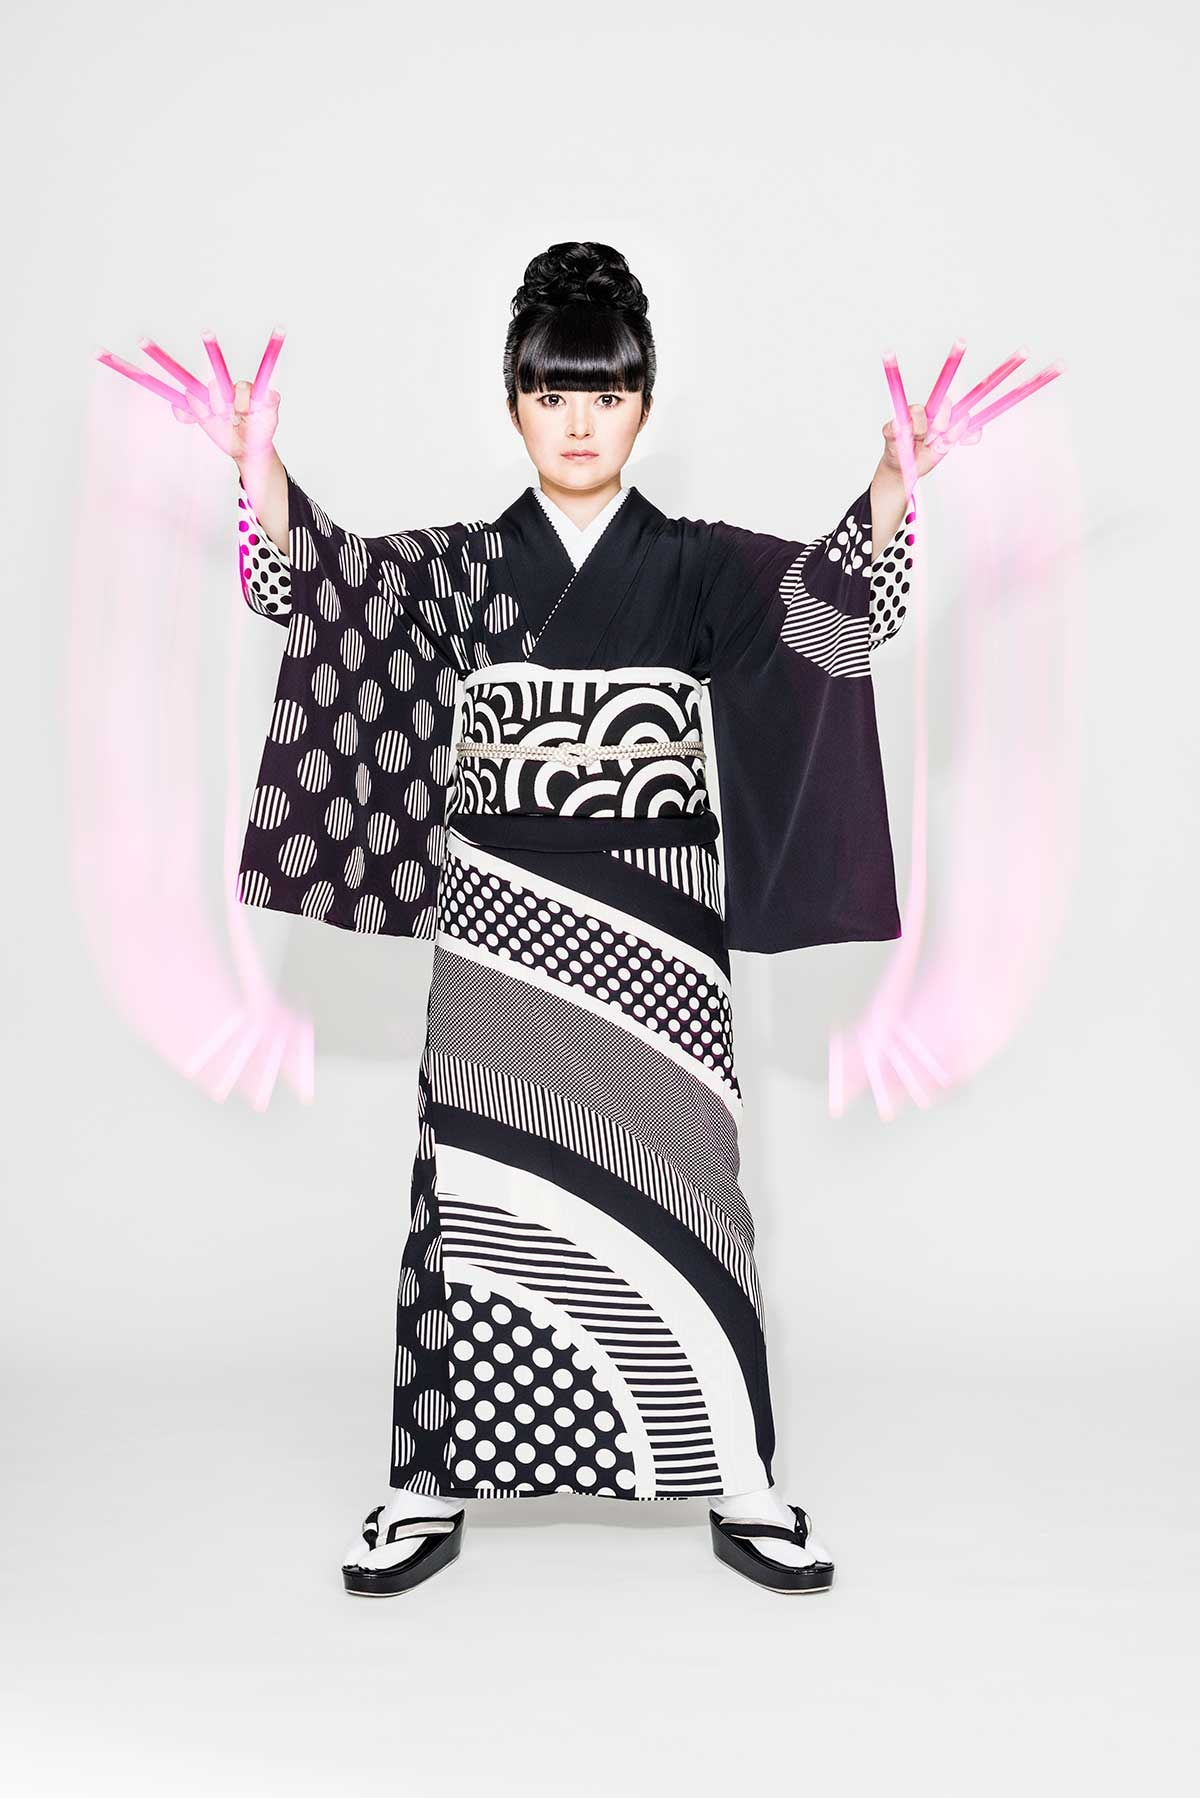 V&A to stage Europe's first major exhibition on the kimono